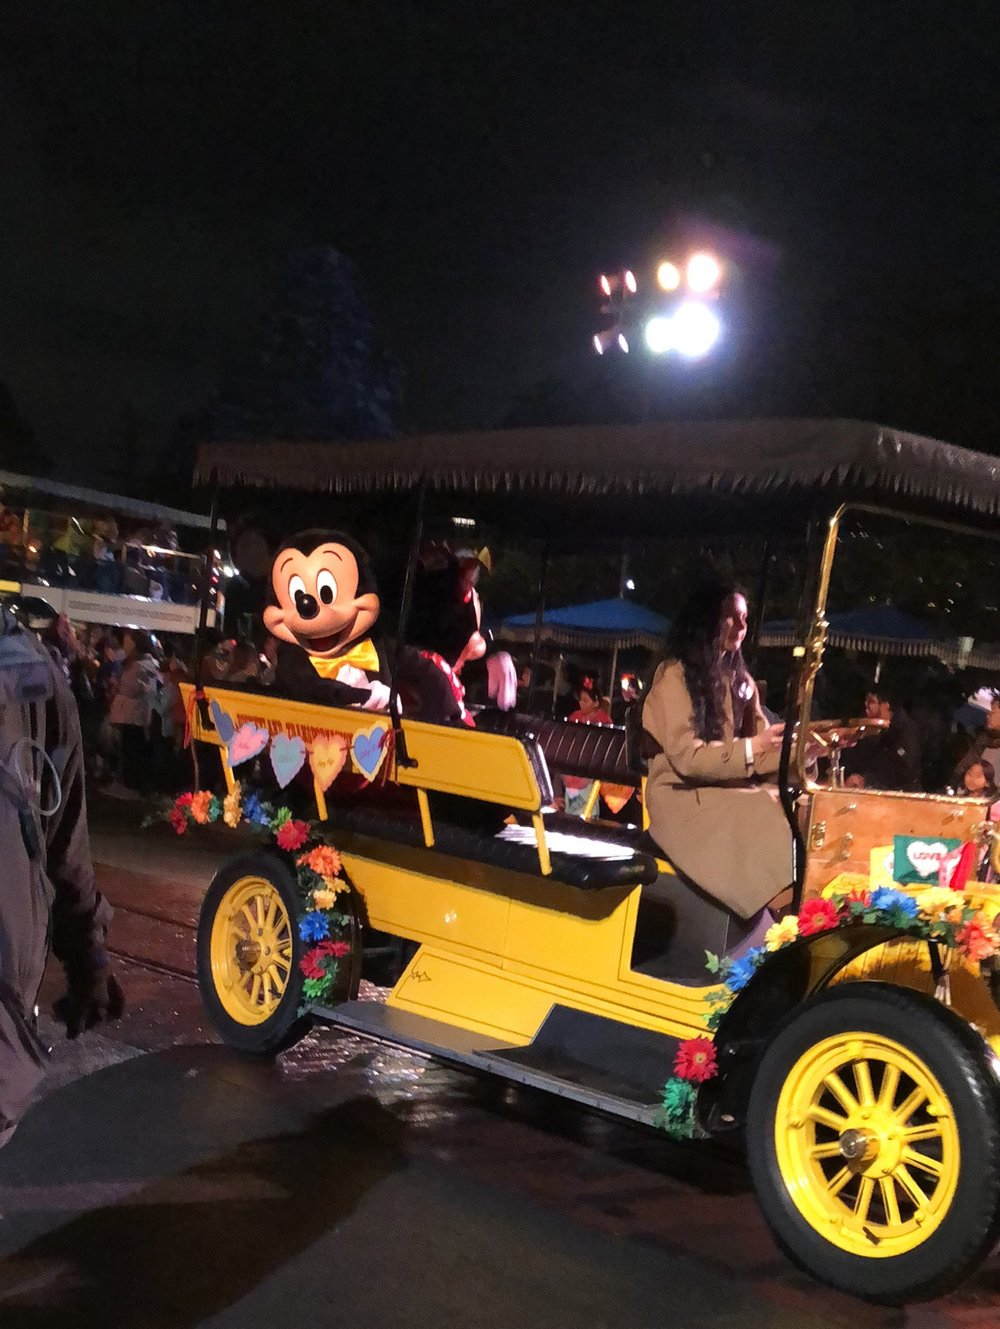 Unexpected And Disappointing Things That Happen At Disney And How To Deal With Them. #Disney #Disneyland #DisneyCaliforniaAdventure #Travel #FamilyTravel #DisneyTips #DisneylandTips